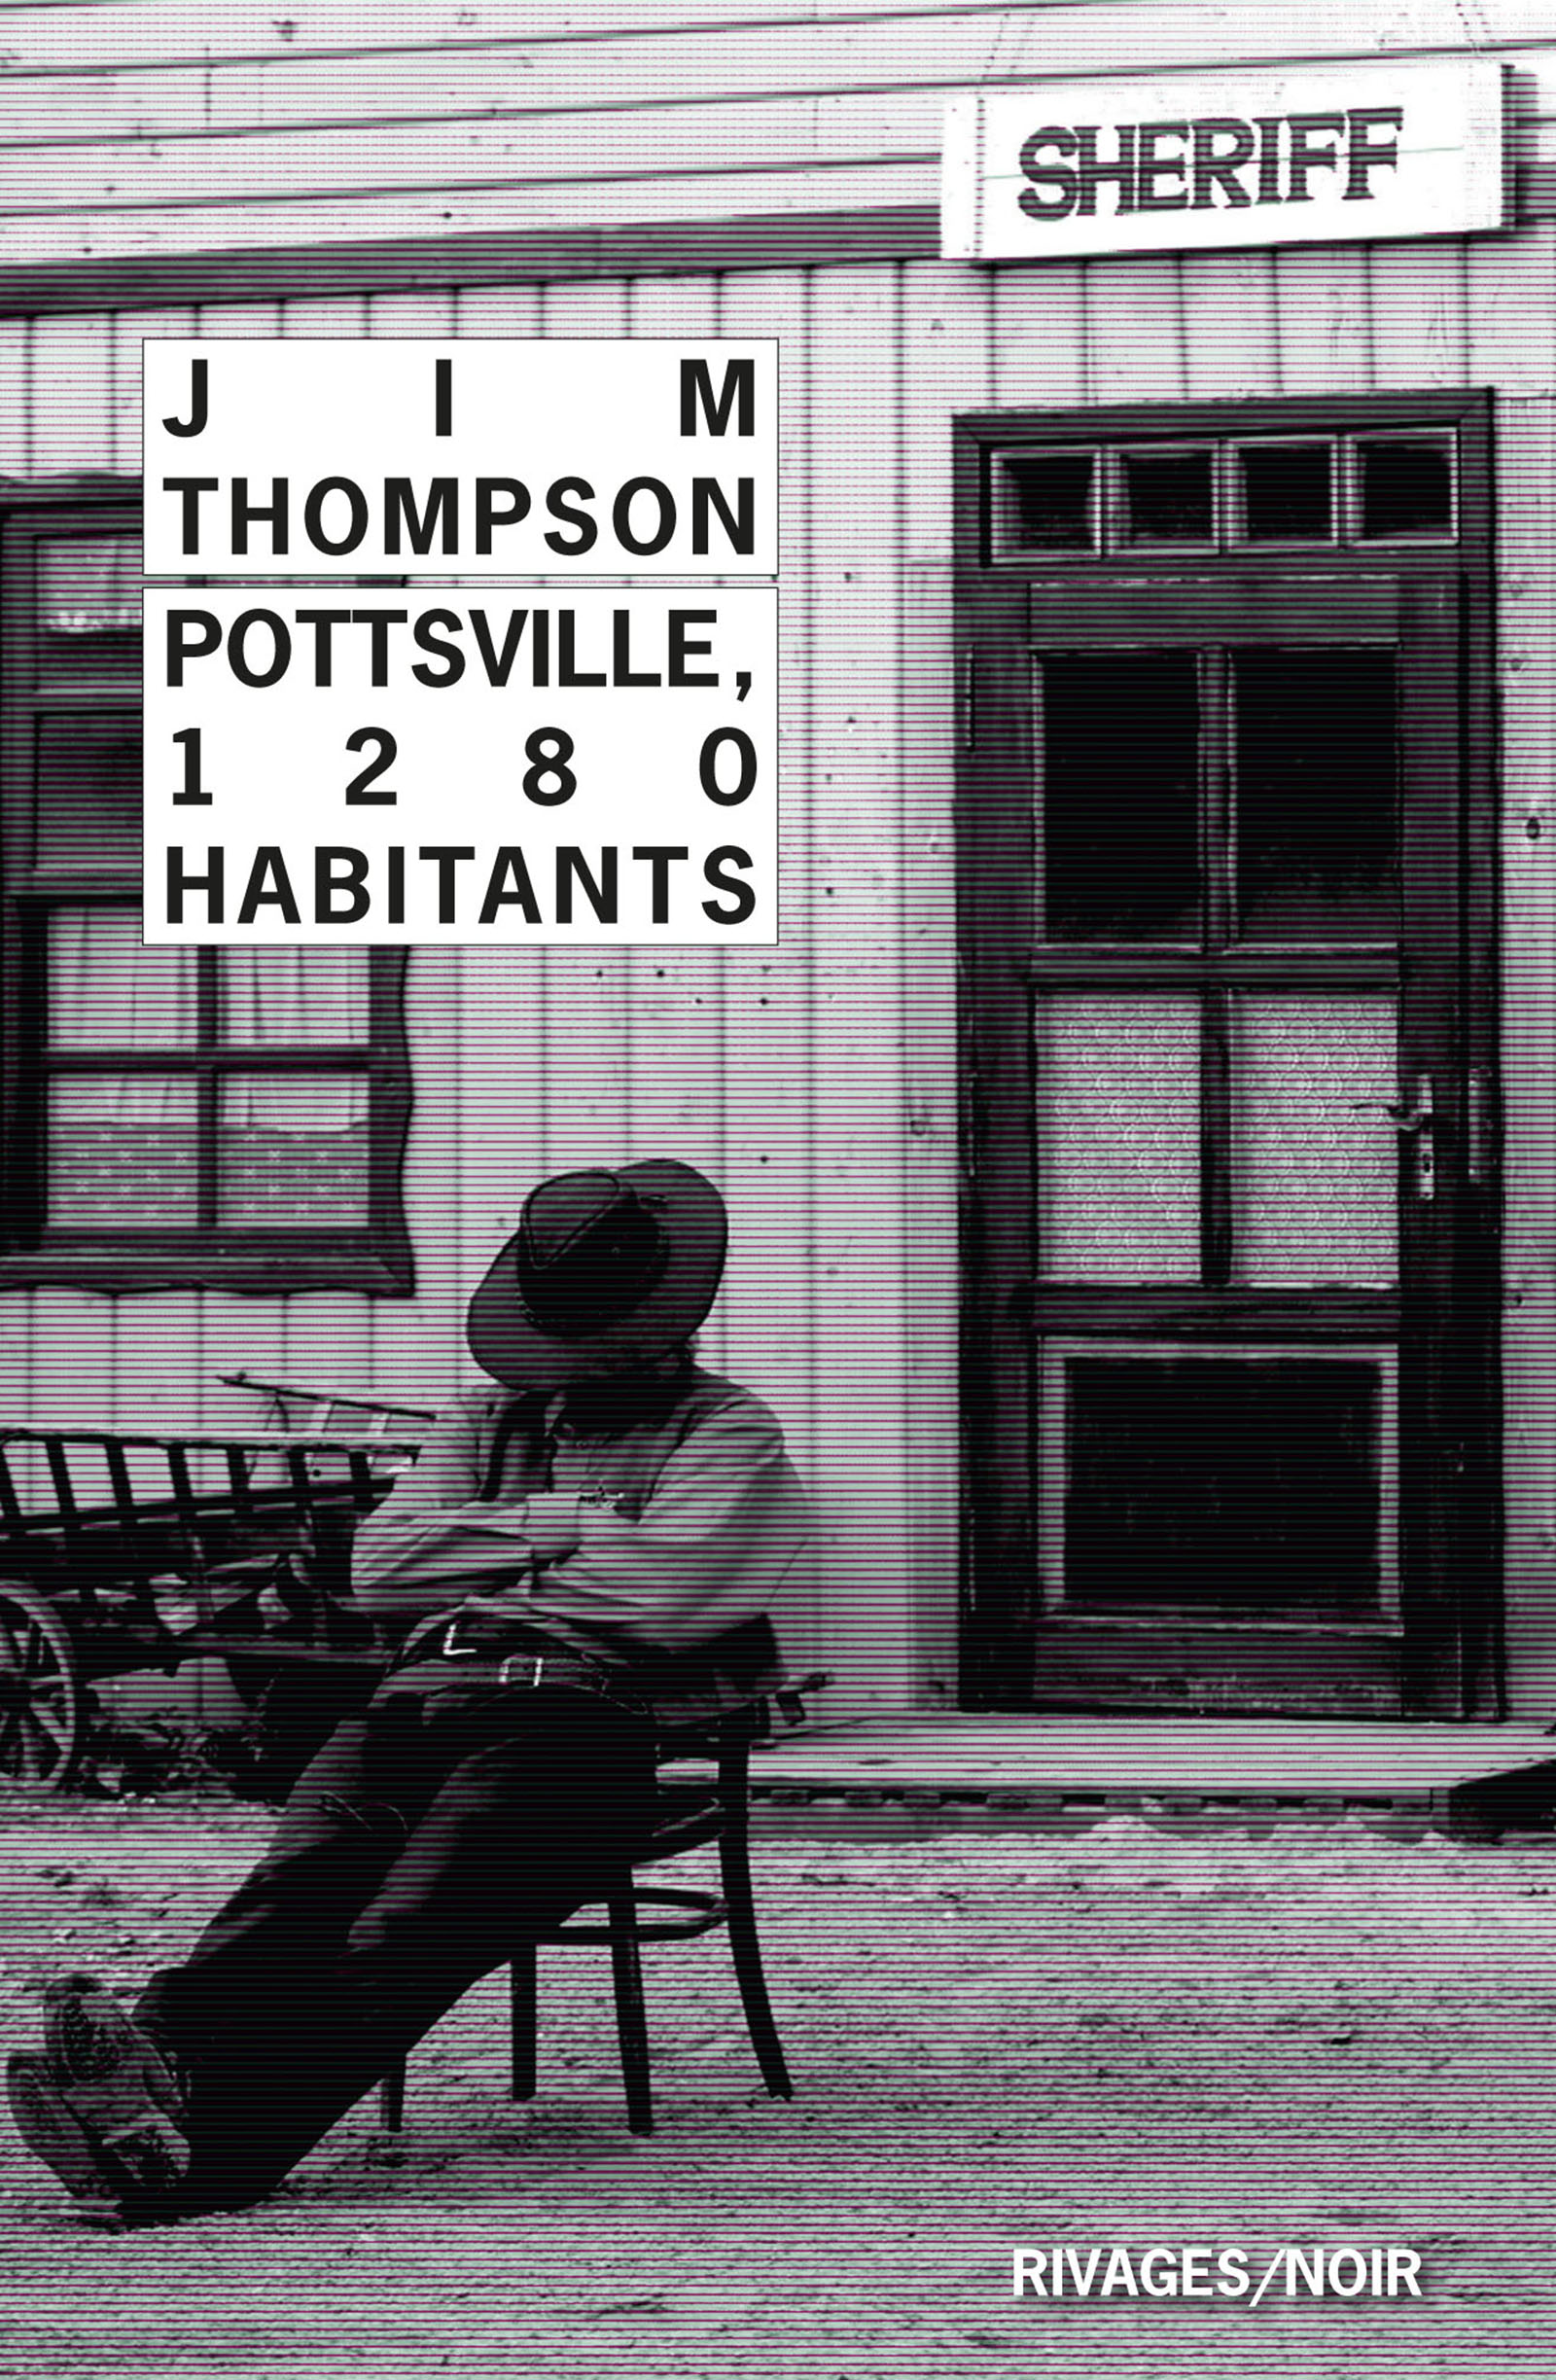 Pottsville, 1280 habitants | Thompson, Jim